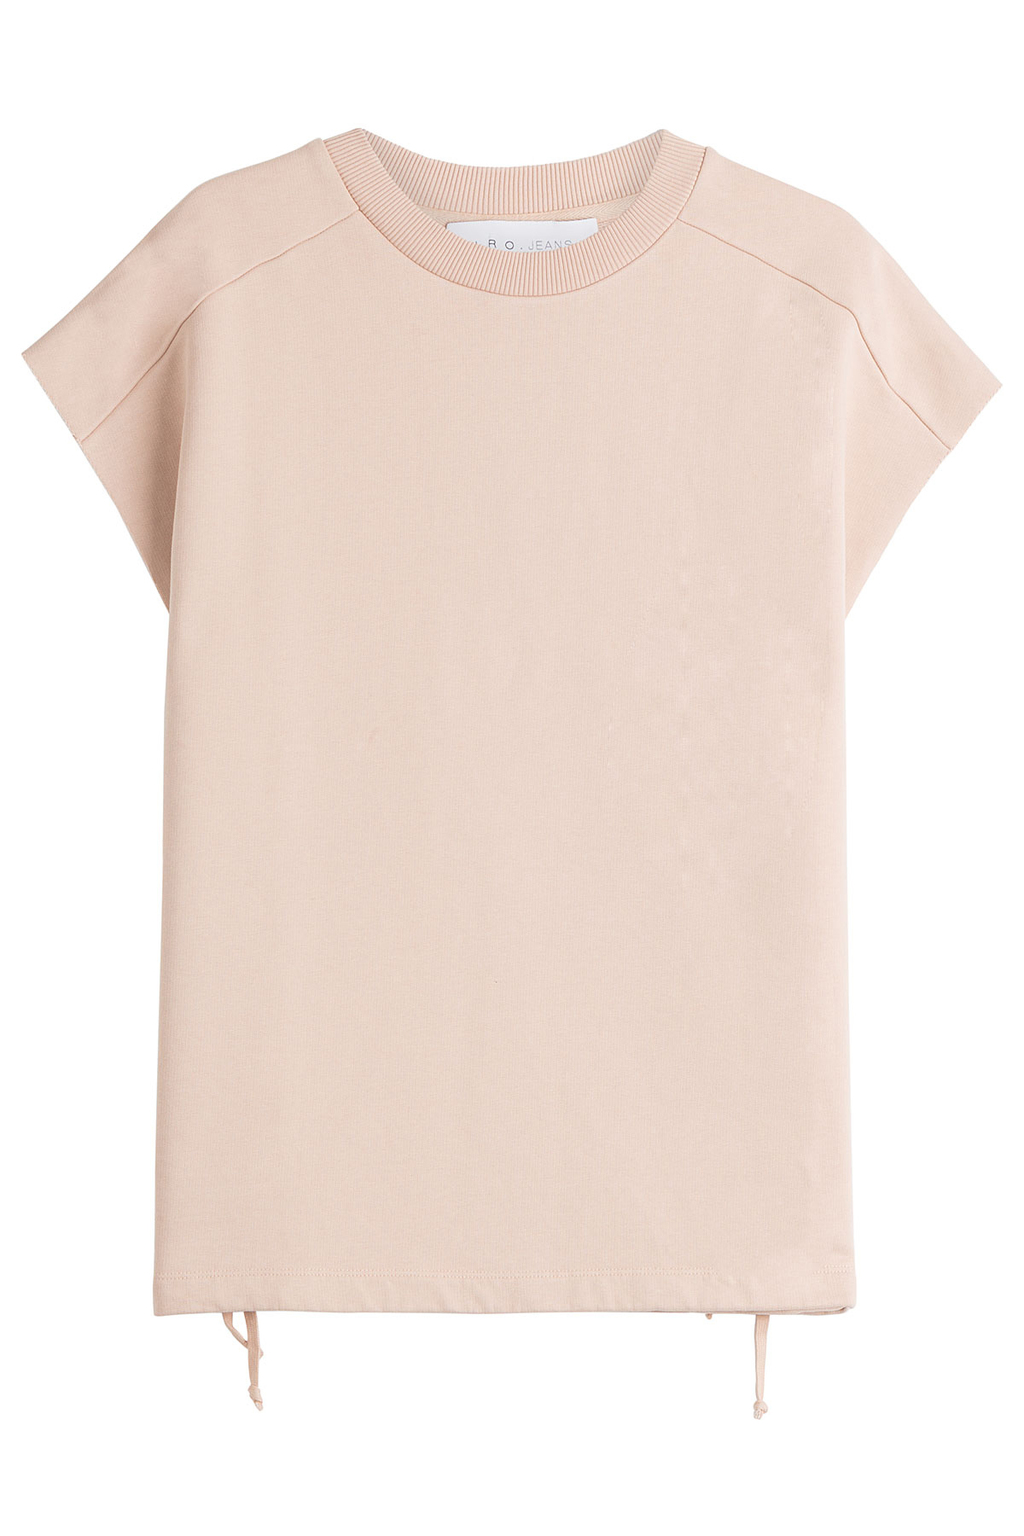 Roldan Cotton Top With Lace Up Detail Beige - pattern: plain; style: sweat top; predominant colour: blush; occasions: casual; length: standard; fibres: cotton - 100%; fit: body skimming; neckline: crew; sleeve length: short sleeve; sleeve style: standard; pattern type: fabric; texture group: jersey - stretchy/drapey; season: s/s 2016